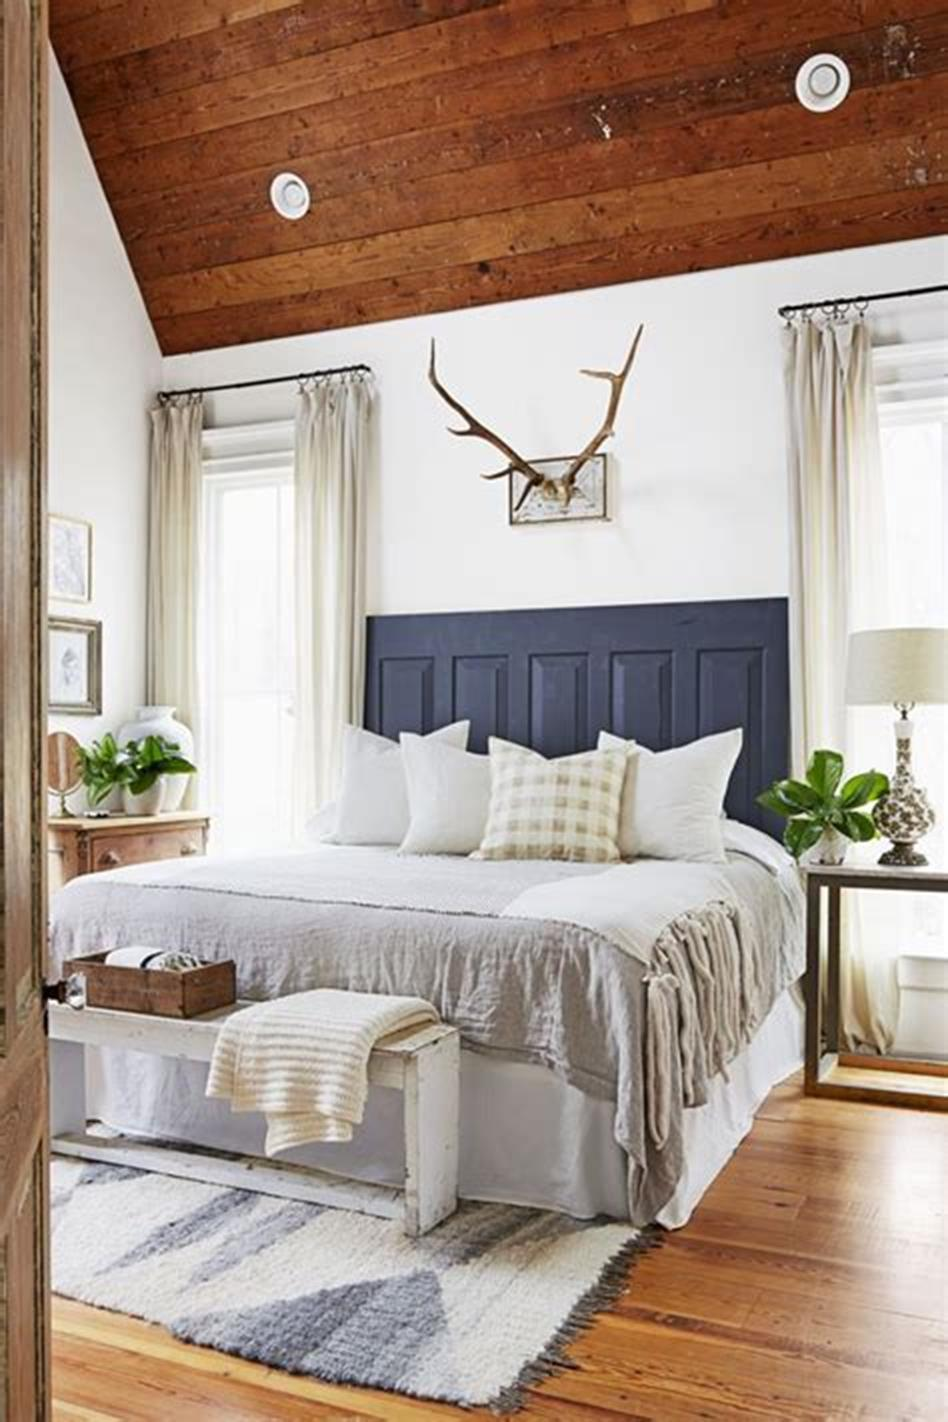 48 Stunning Farmhouse Master Bedroom Design Ideas 2019 19